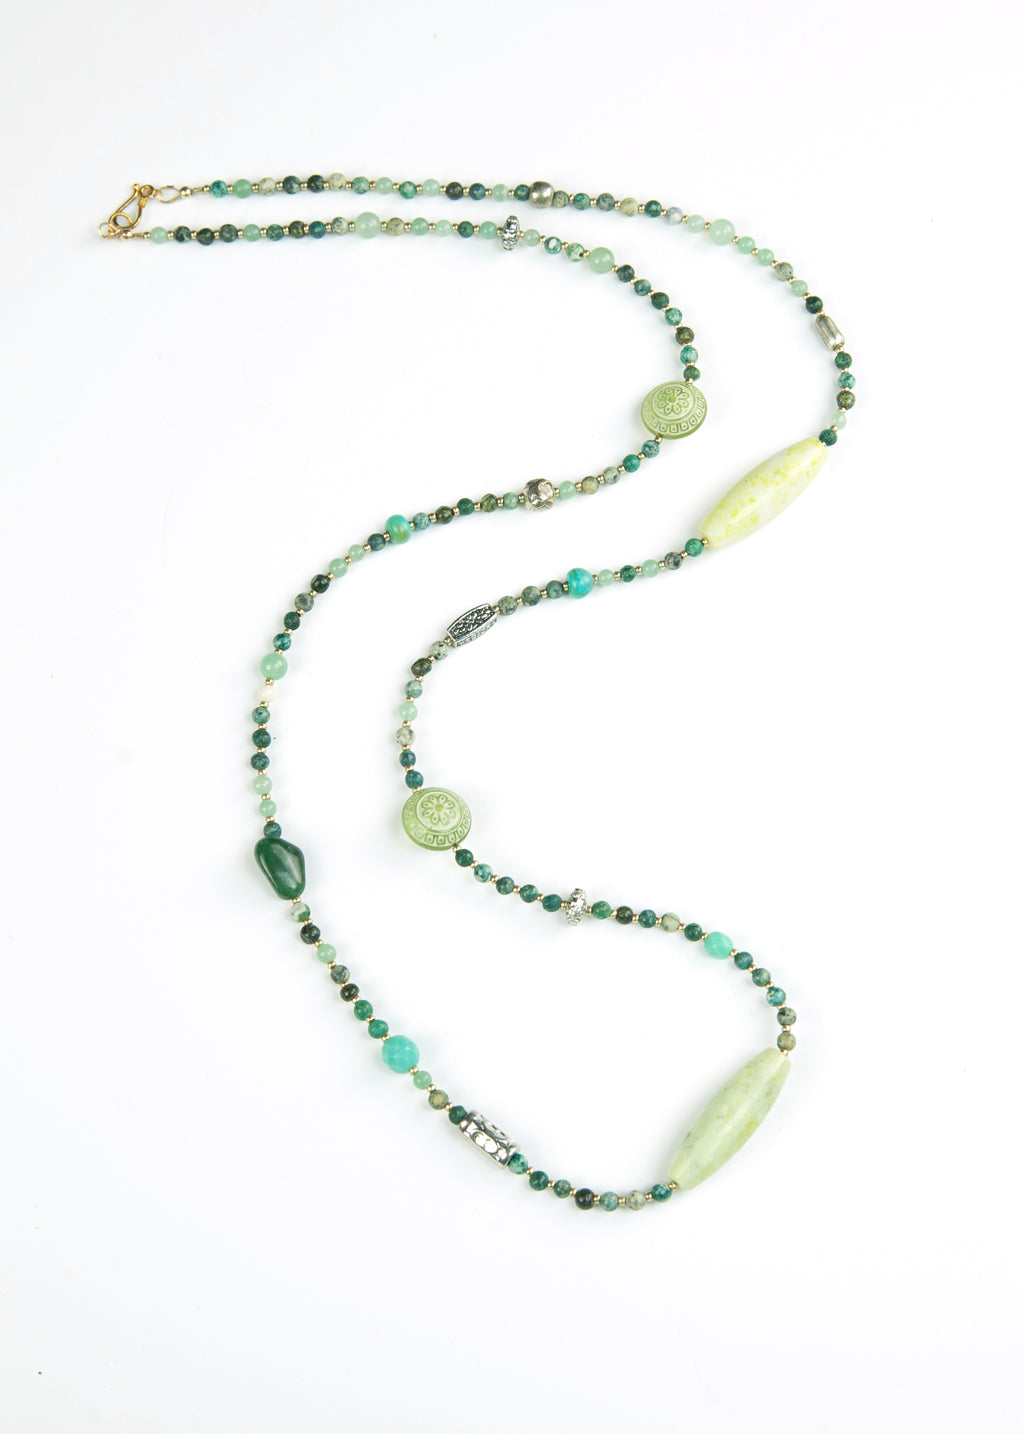 Green Stone and Metal Yoga Necklace